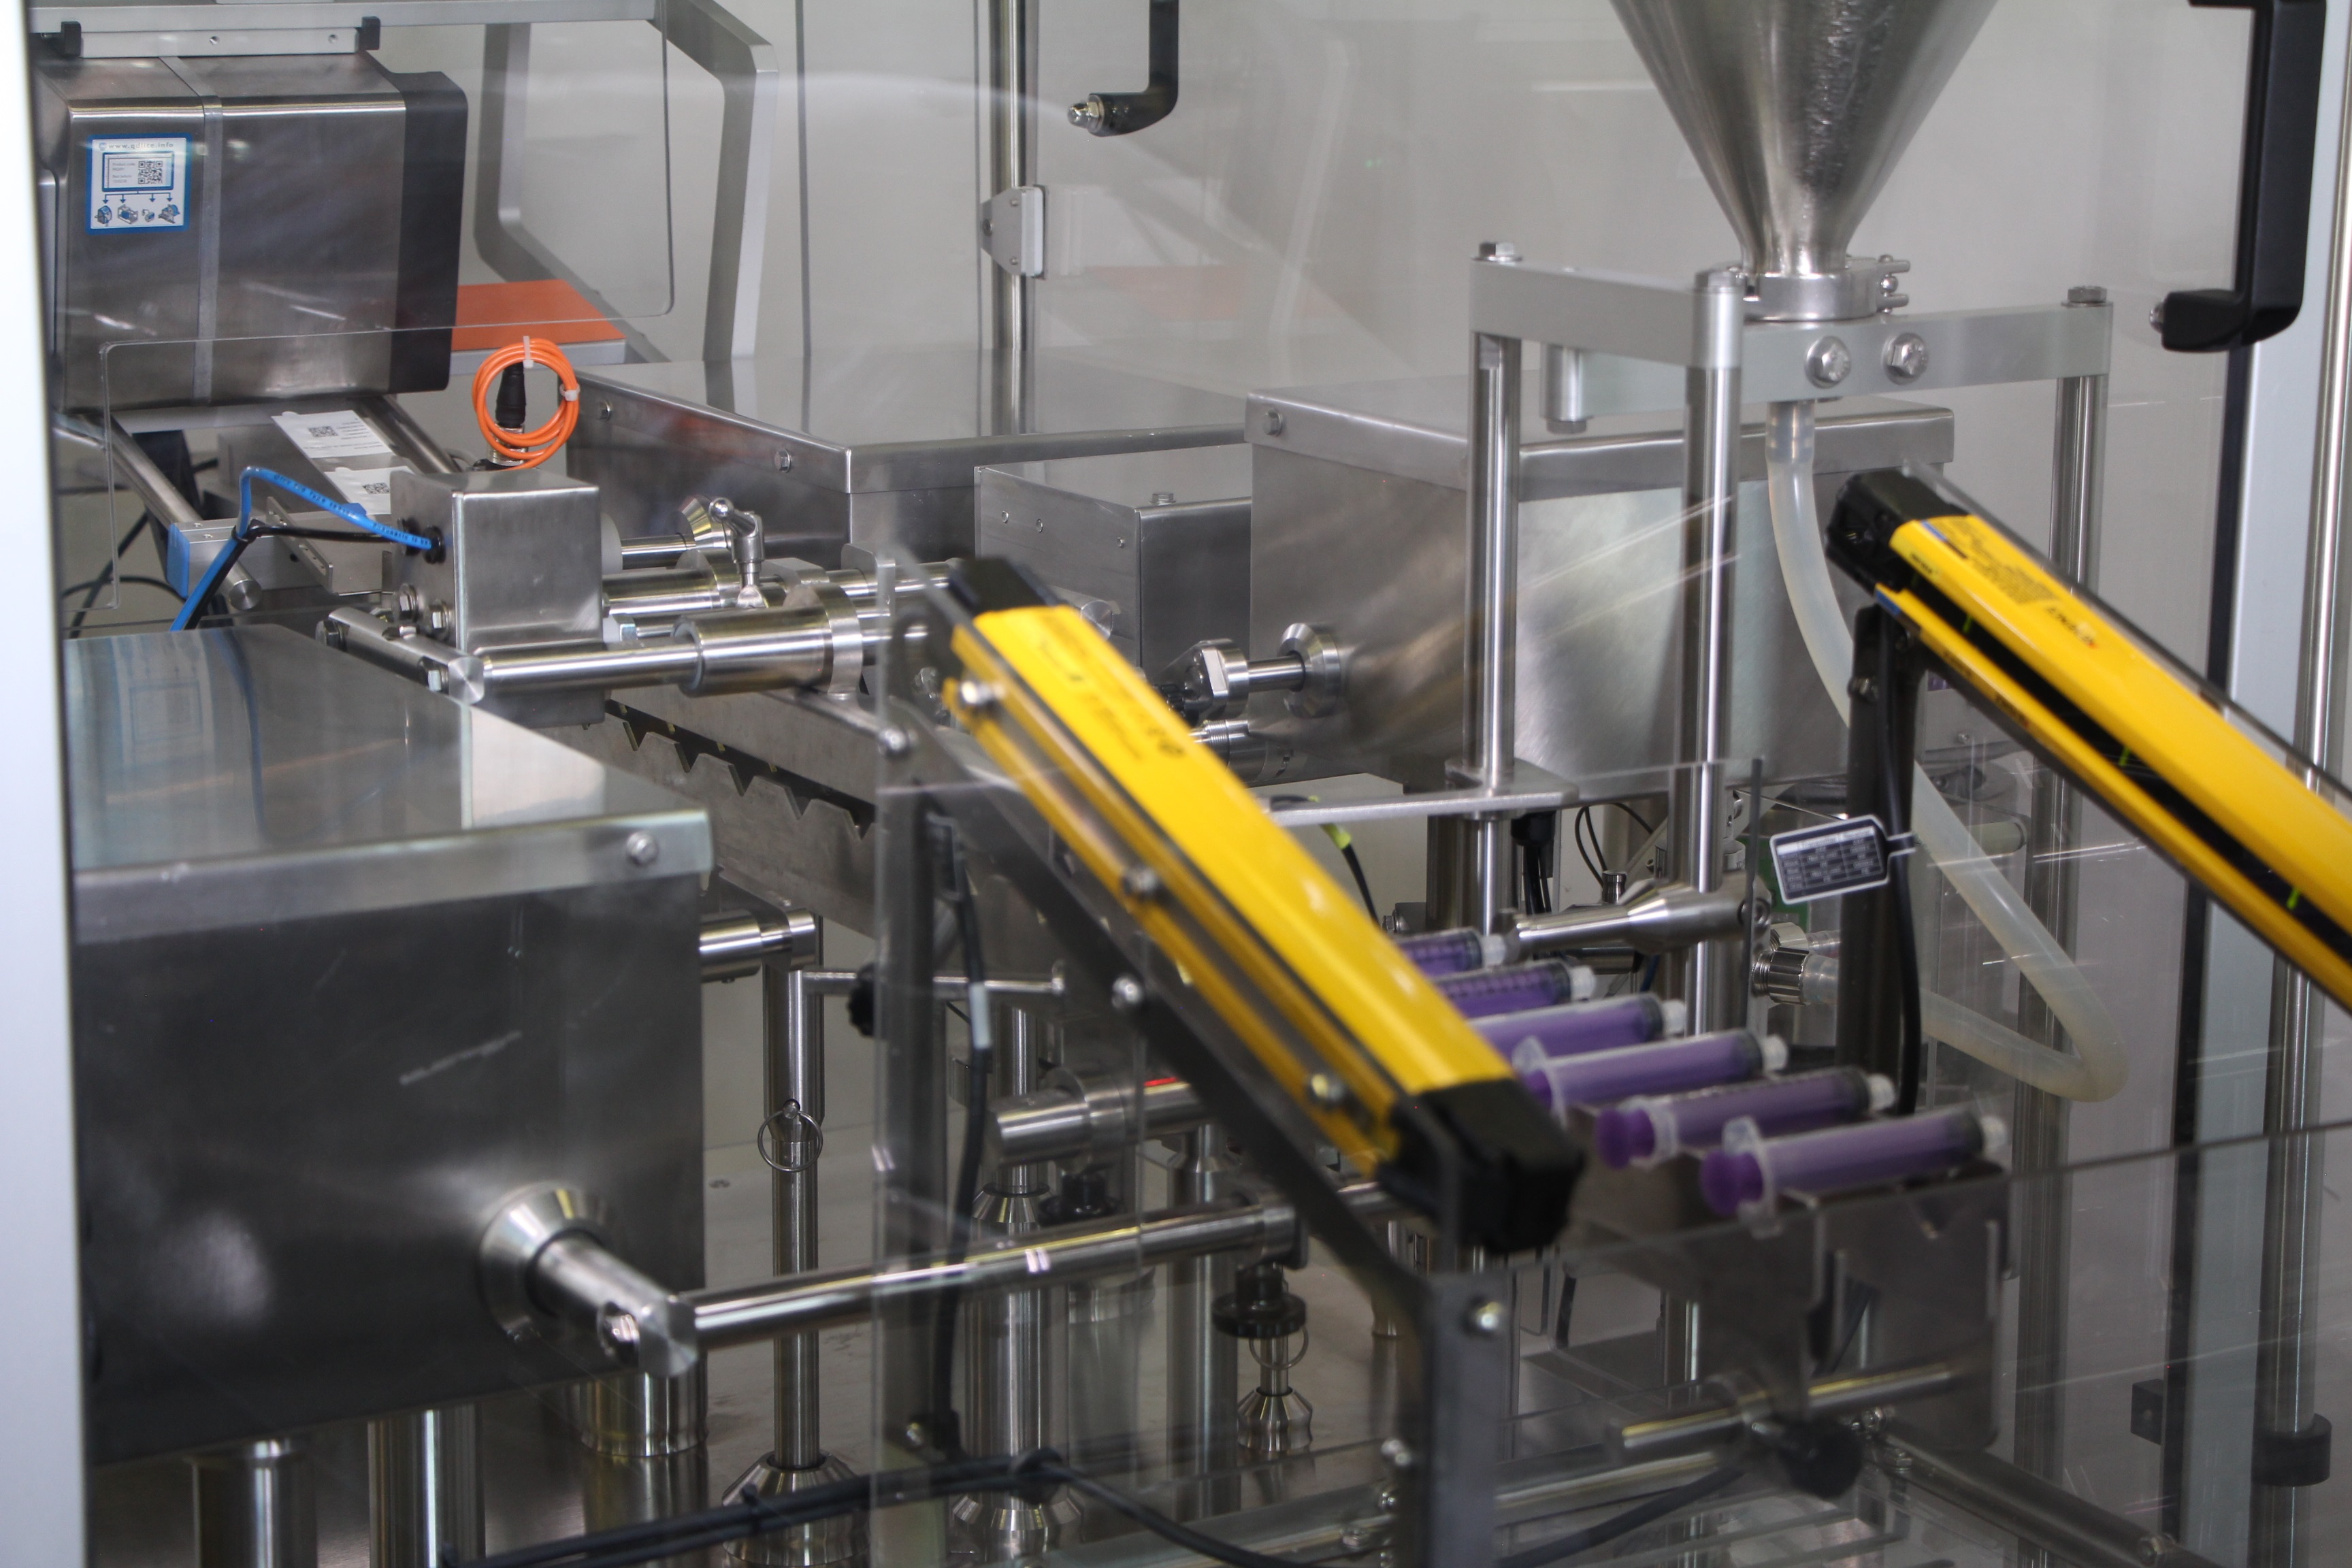 At INTERPHEX NYC, TurboFil to Showcase Module for Simplified, Automated Syringe Filling & Assembly